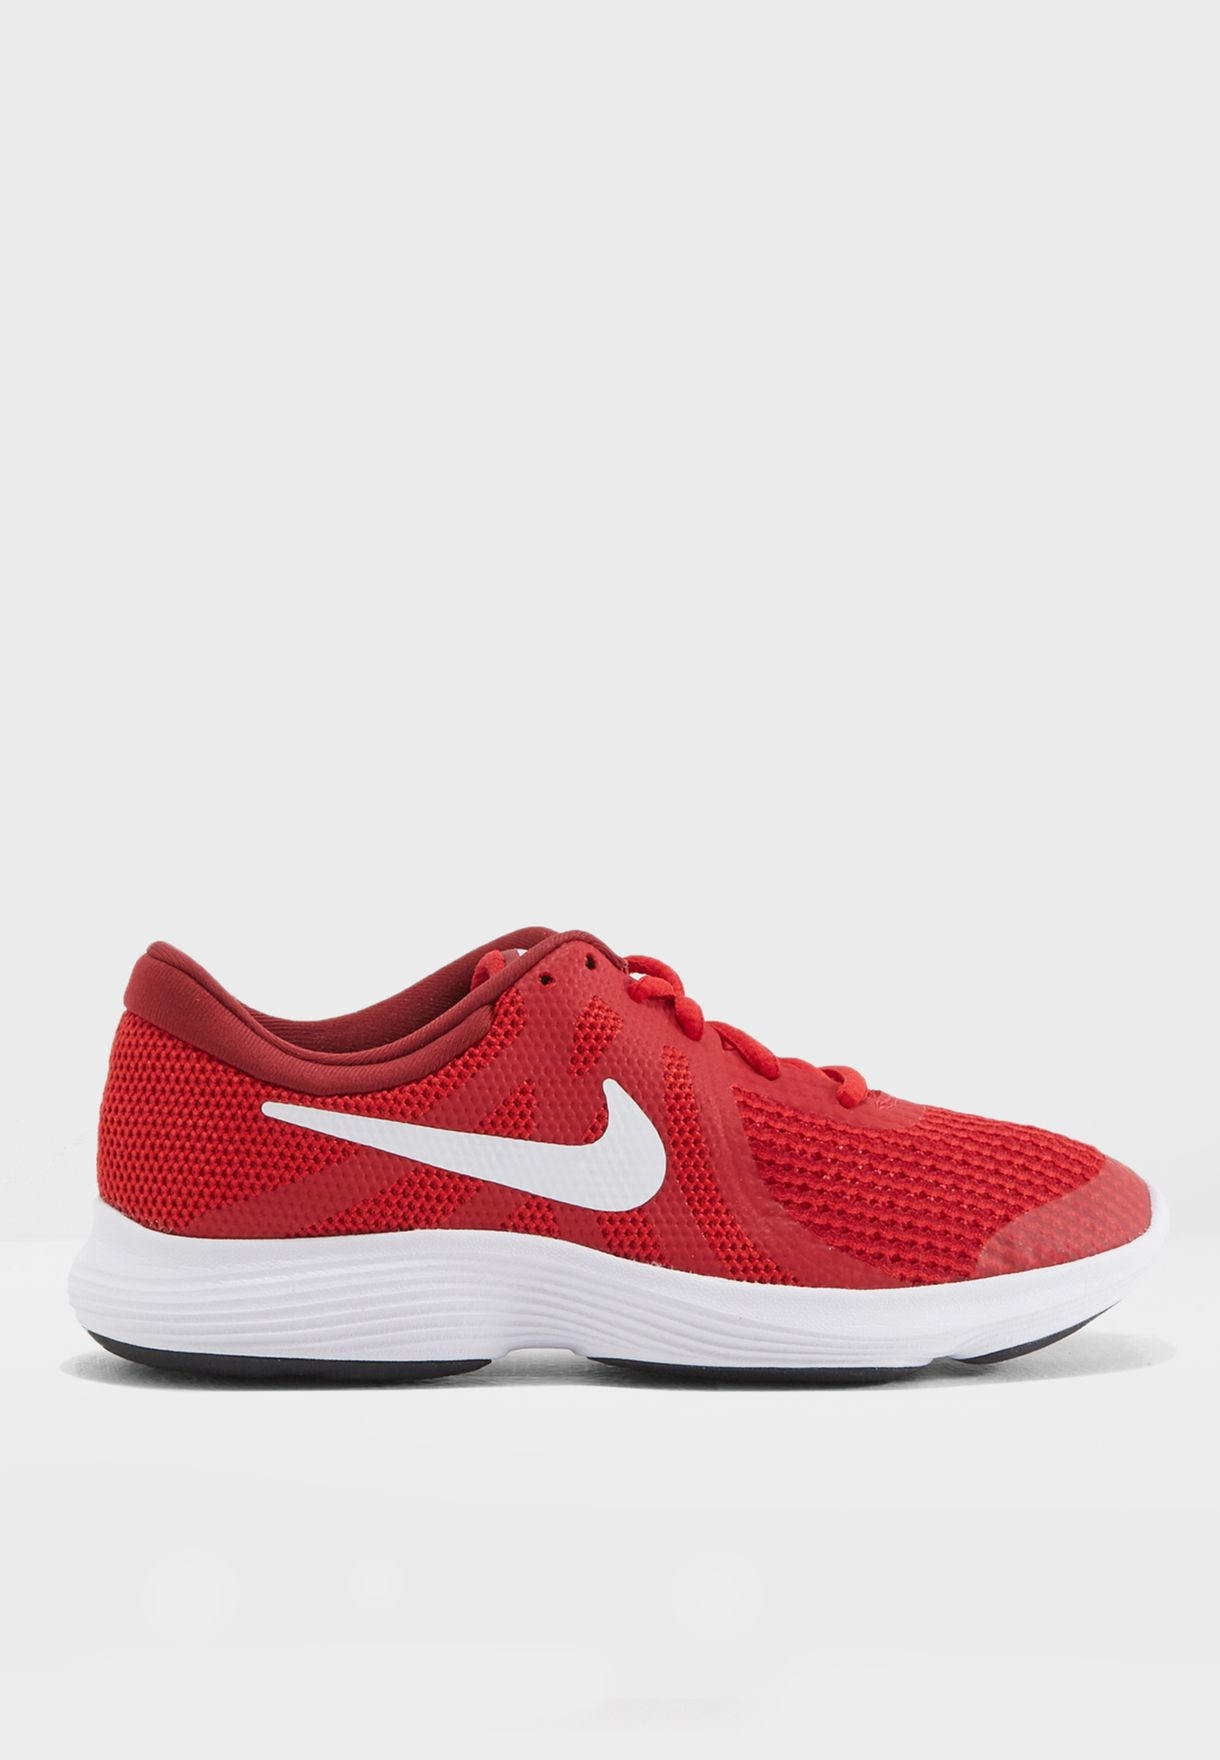 81a5bc90fe5 Shop Nike red Revolution 4 Youth 943309-601 for Kids in UAE ...